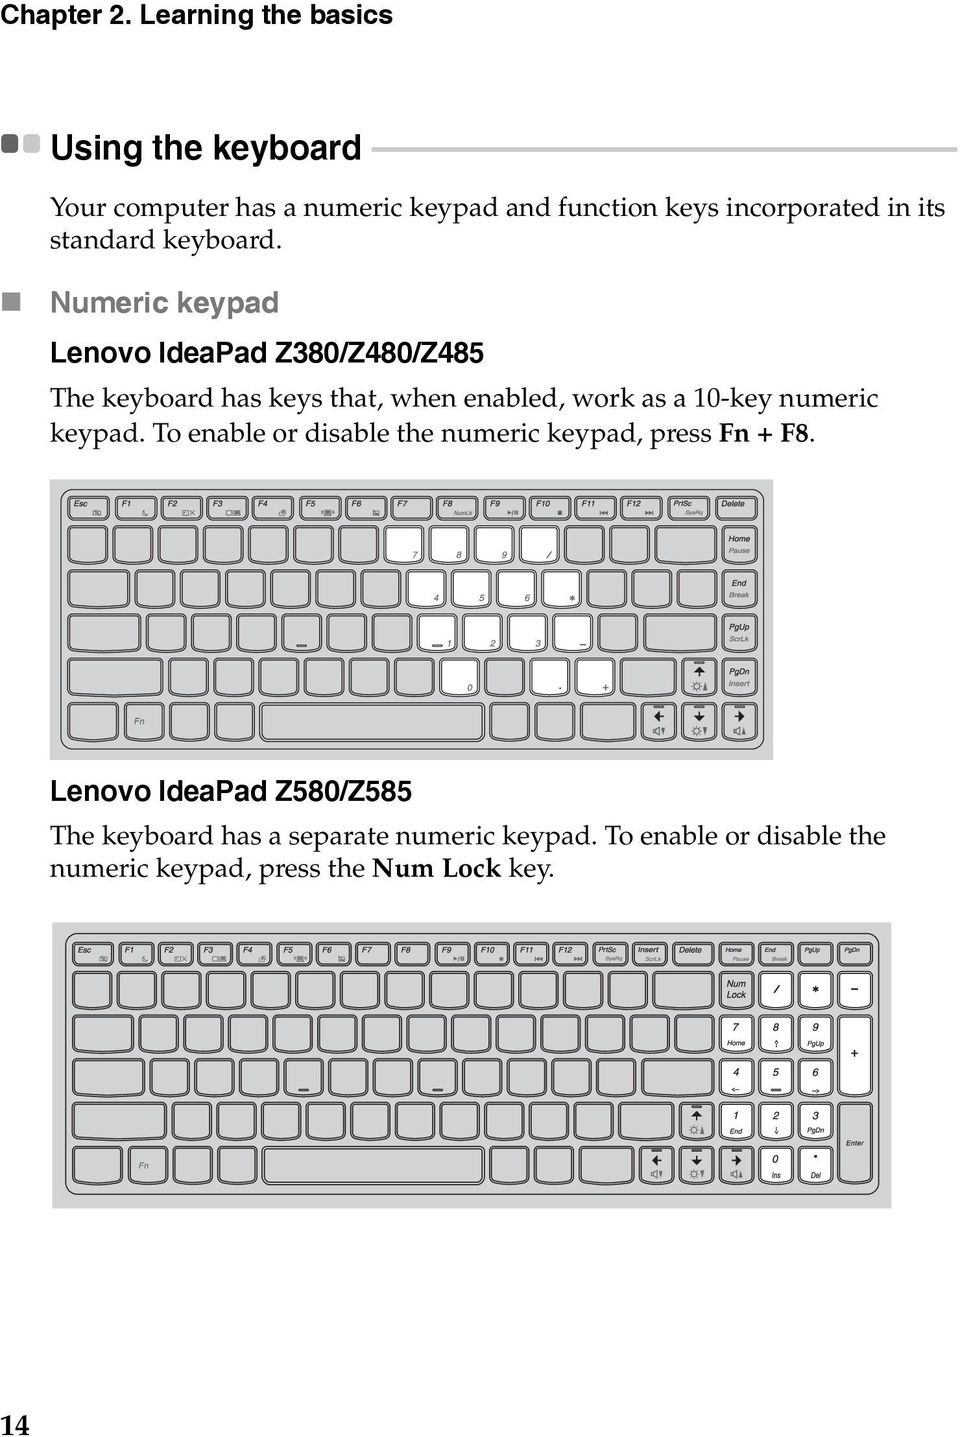 - - - - - - - - - - - - - - - - - - - - - - Your computer has a numeric keypad and function keys incorporated in its standard keyboard.